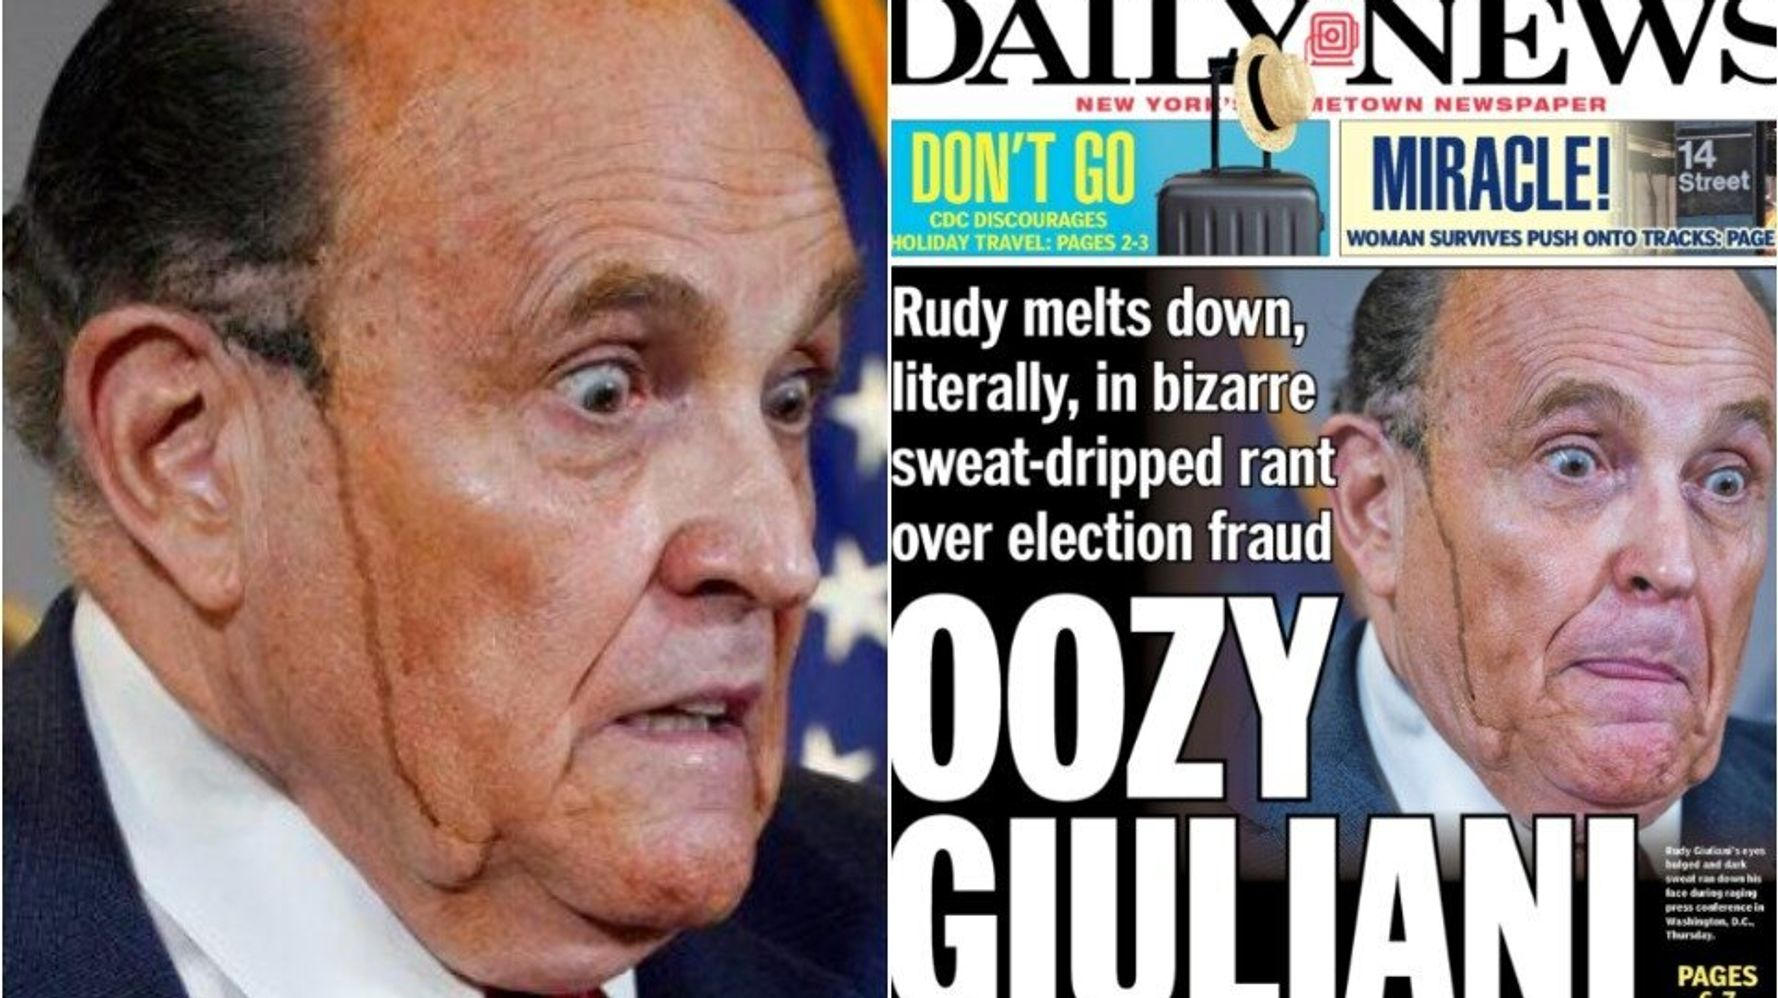 New York Daily News Taunts Rudy Giuliani With A Mucky New Nickname